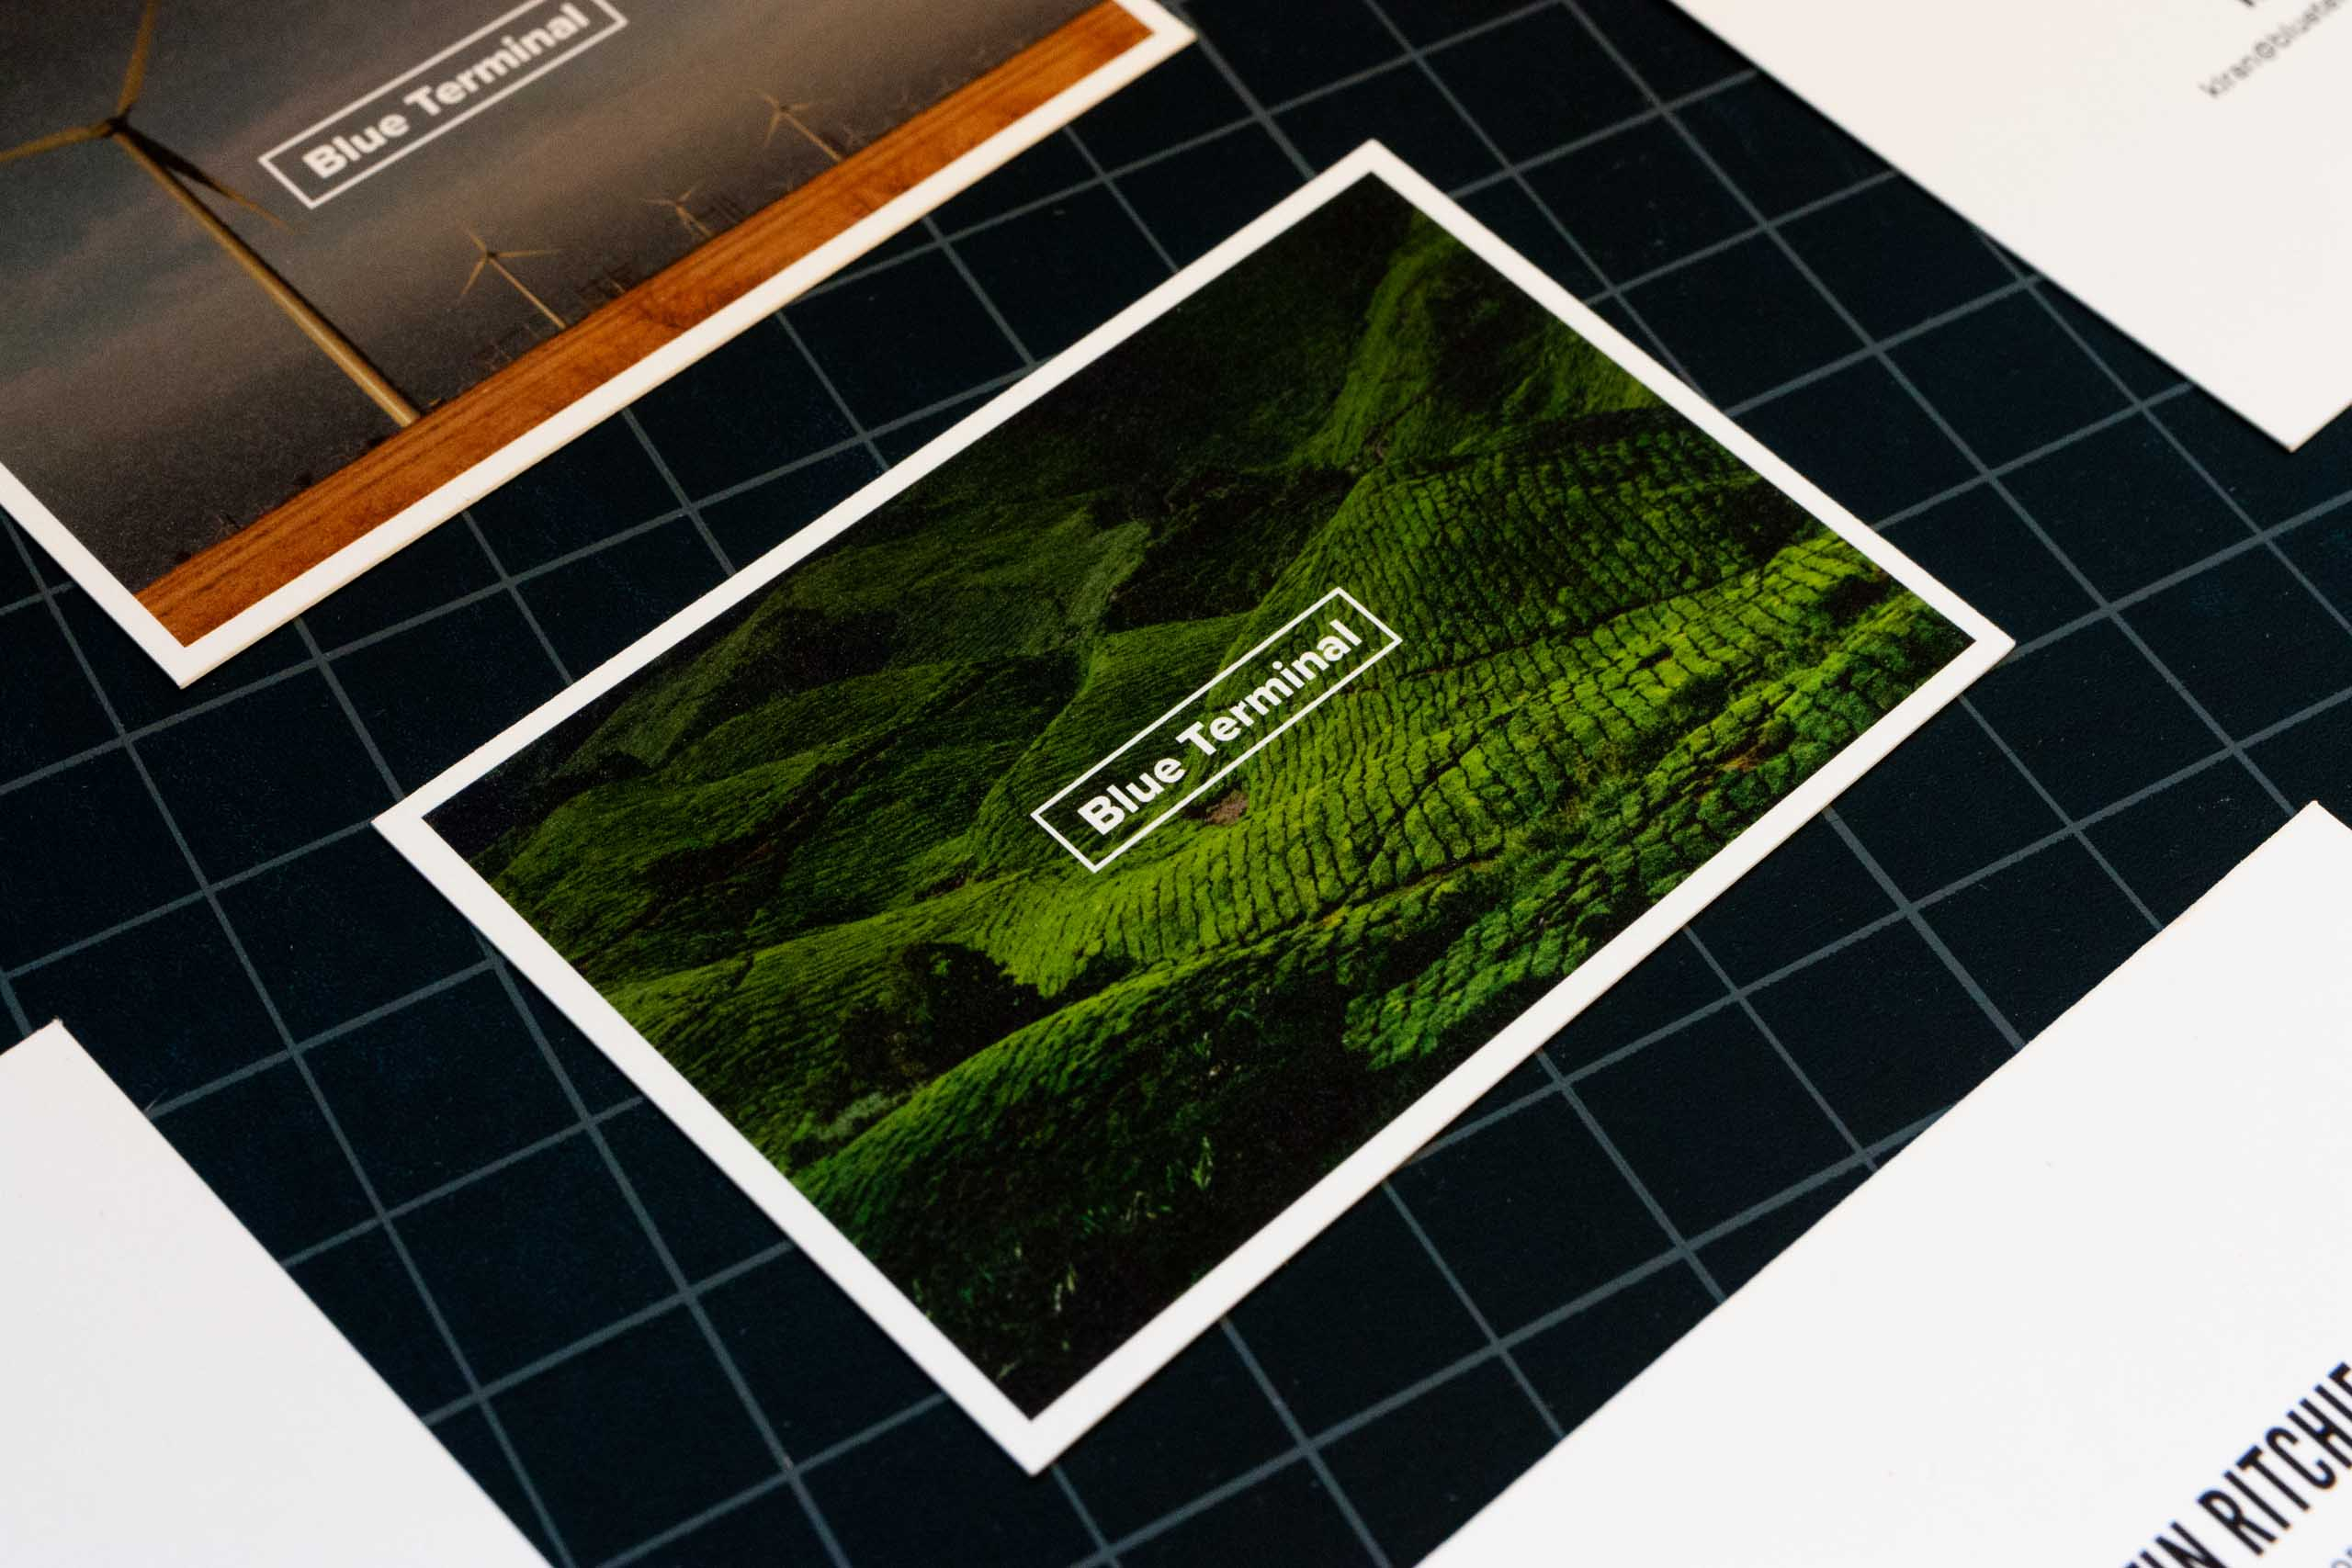 Close up of Blue Terminal business card image side with Blue Terminal logo in white over a photo of green rolling hills — by Yagnyuk.